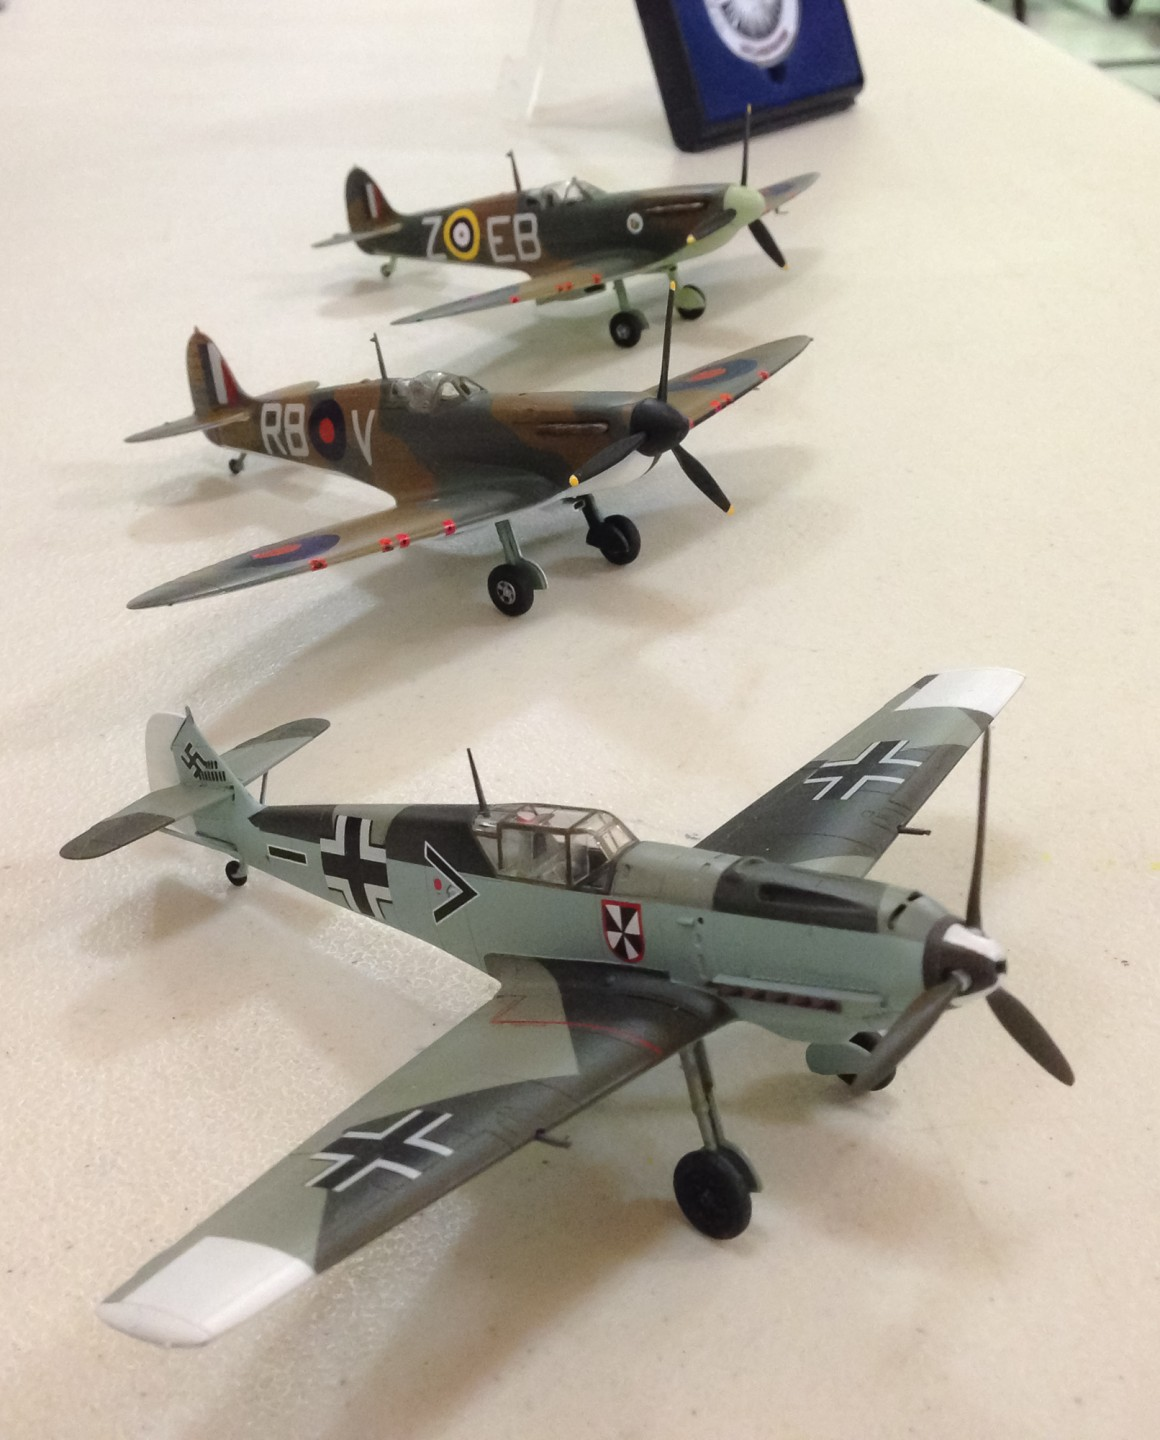 Bill Brickhouse brought three of his latest WWII single prop planes for the show-and-tell portion of the November meeting.